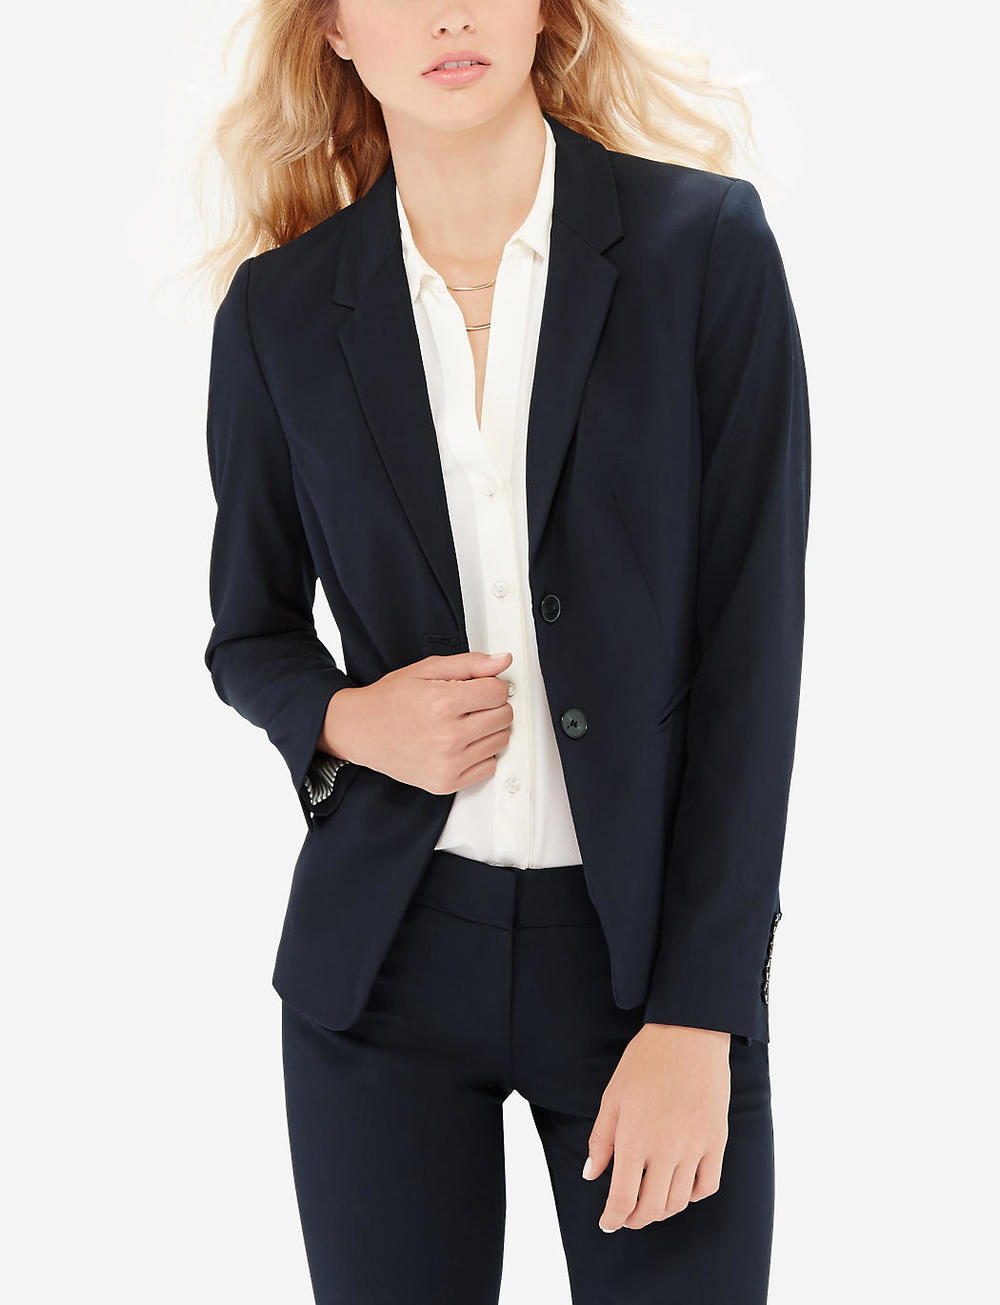 Collection 2 button jacket. Available in multiple colors. (I like navy!). The Limited. Was: $169 Now: $84.